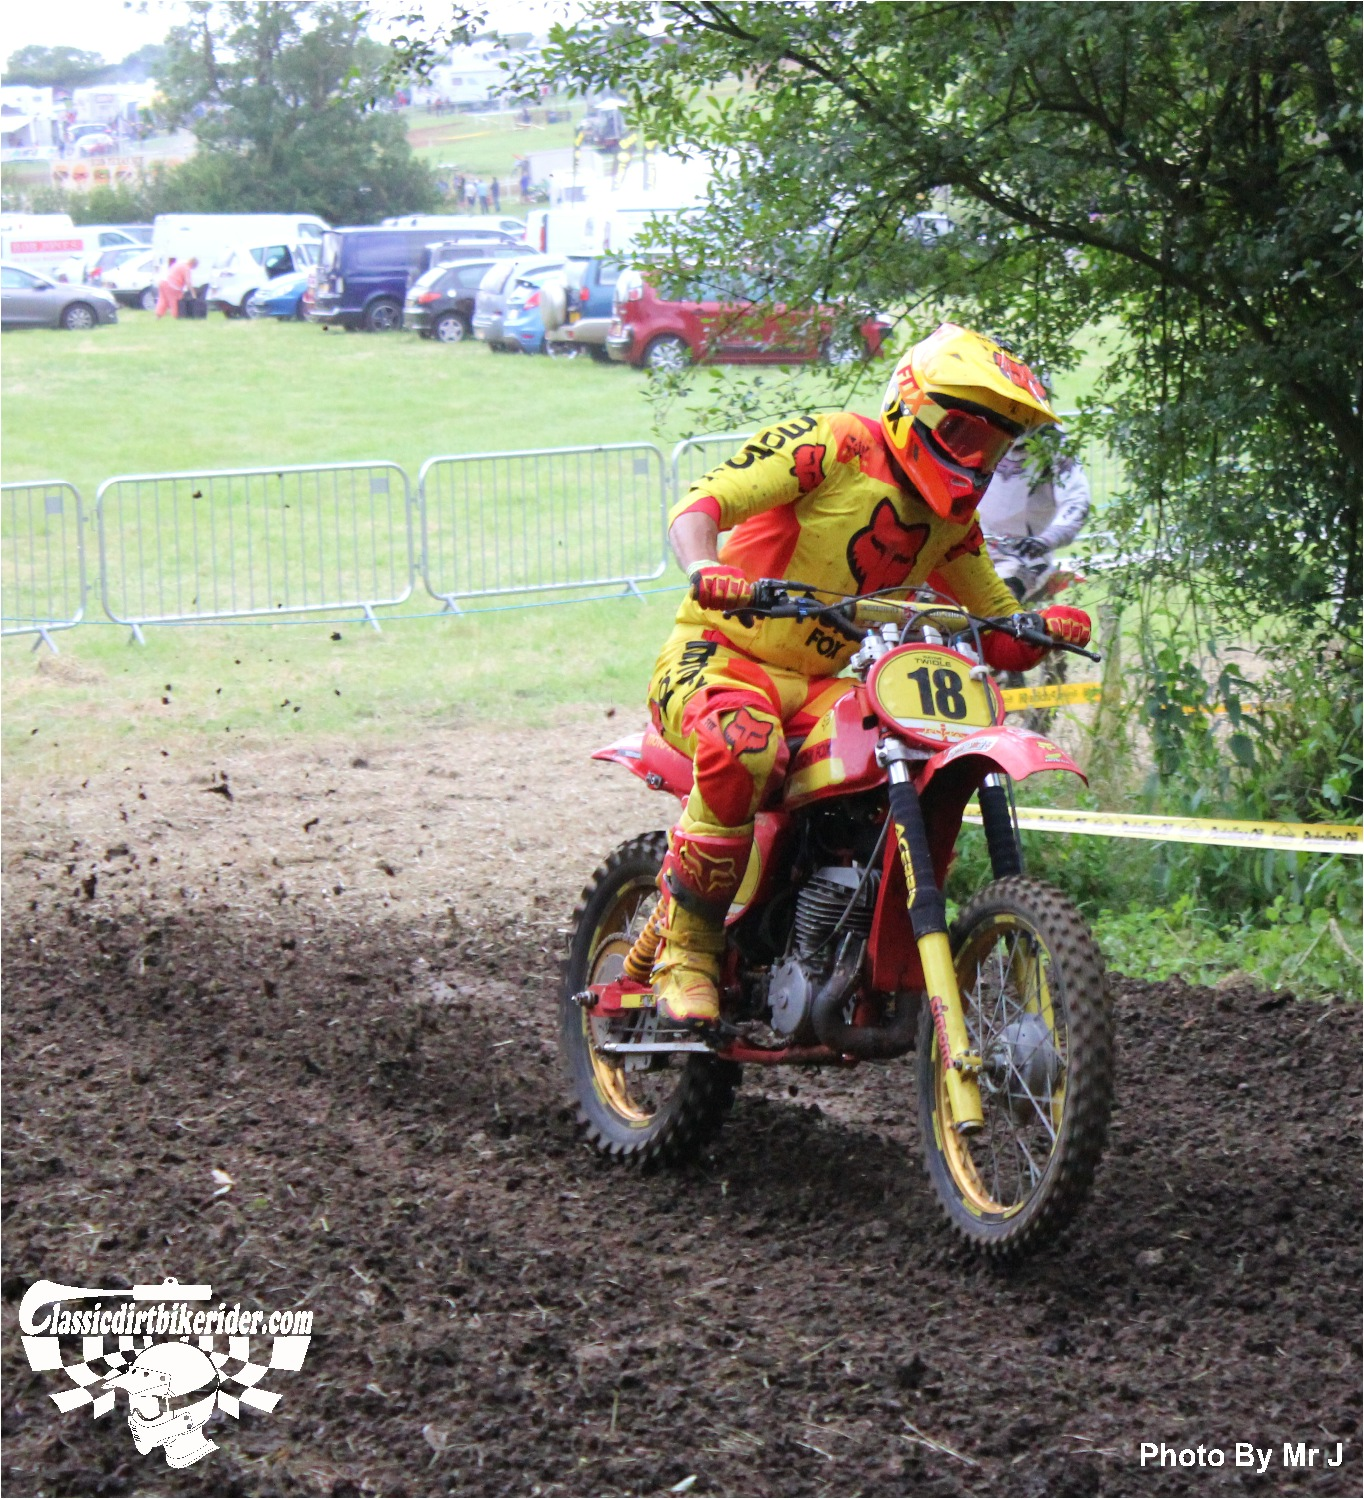 king of the castle 2015 photos Farleigh Castle twinshock motocross classicdirtbikerider.com 65